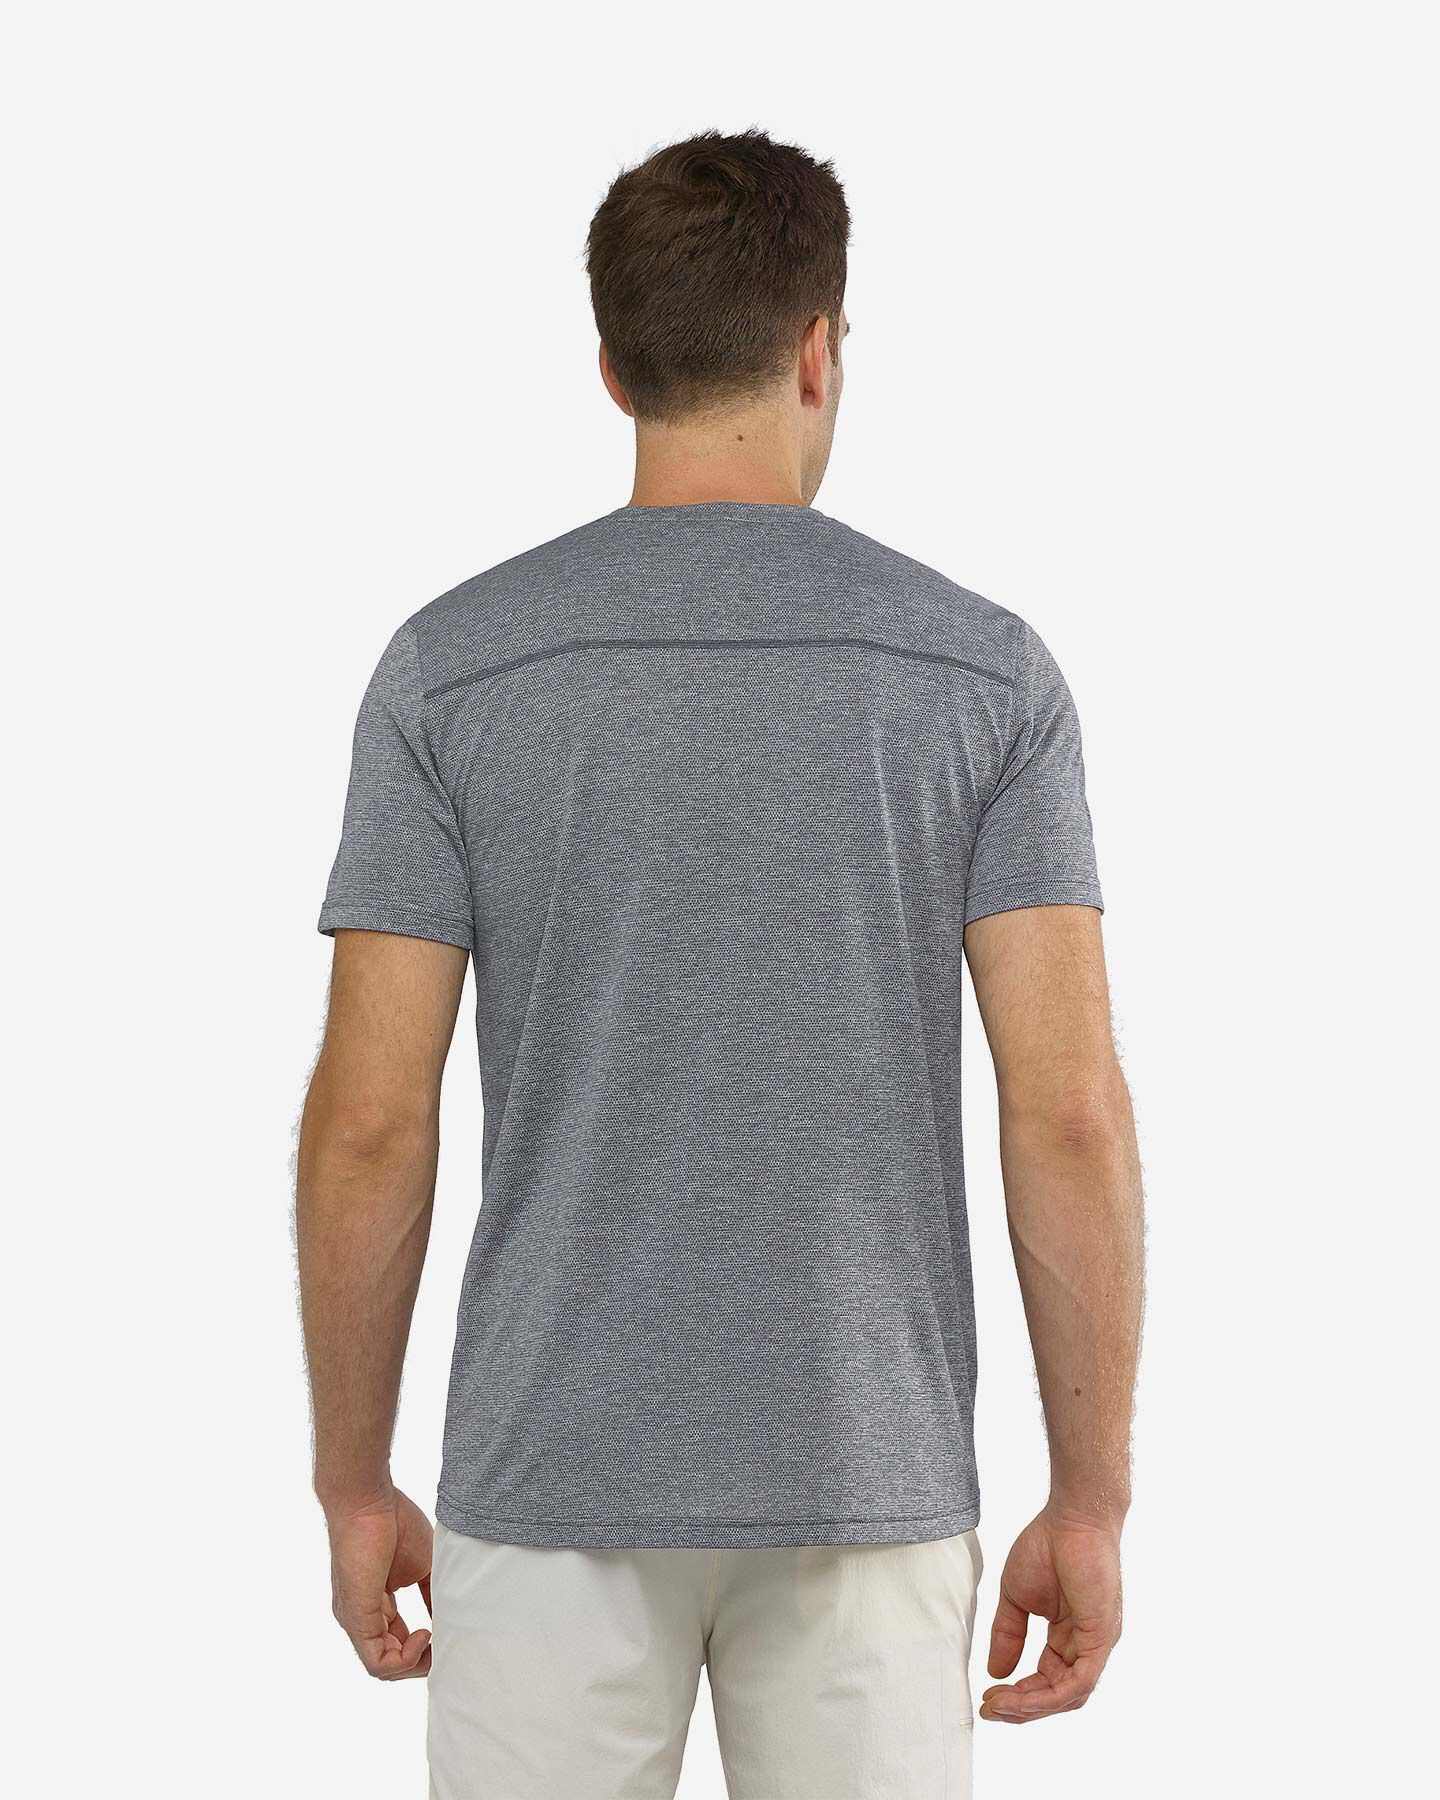 T-Shirt SALOMON EXPLORE PIQUE M S5173794 scatto 3